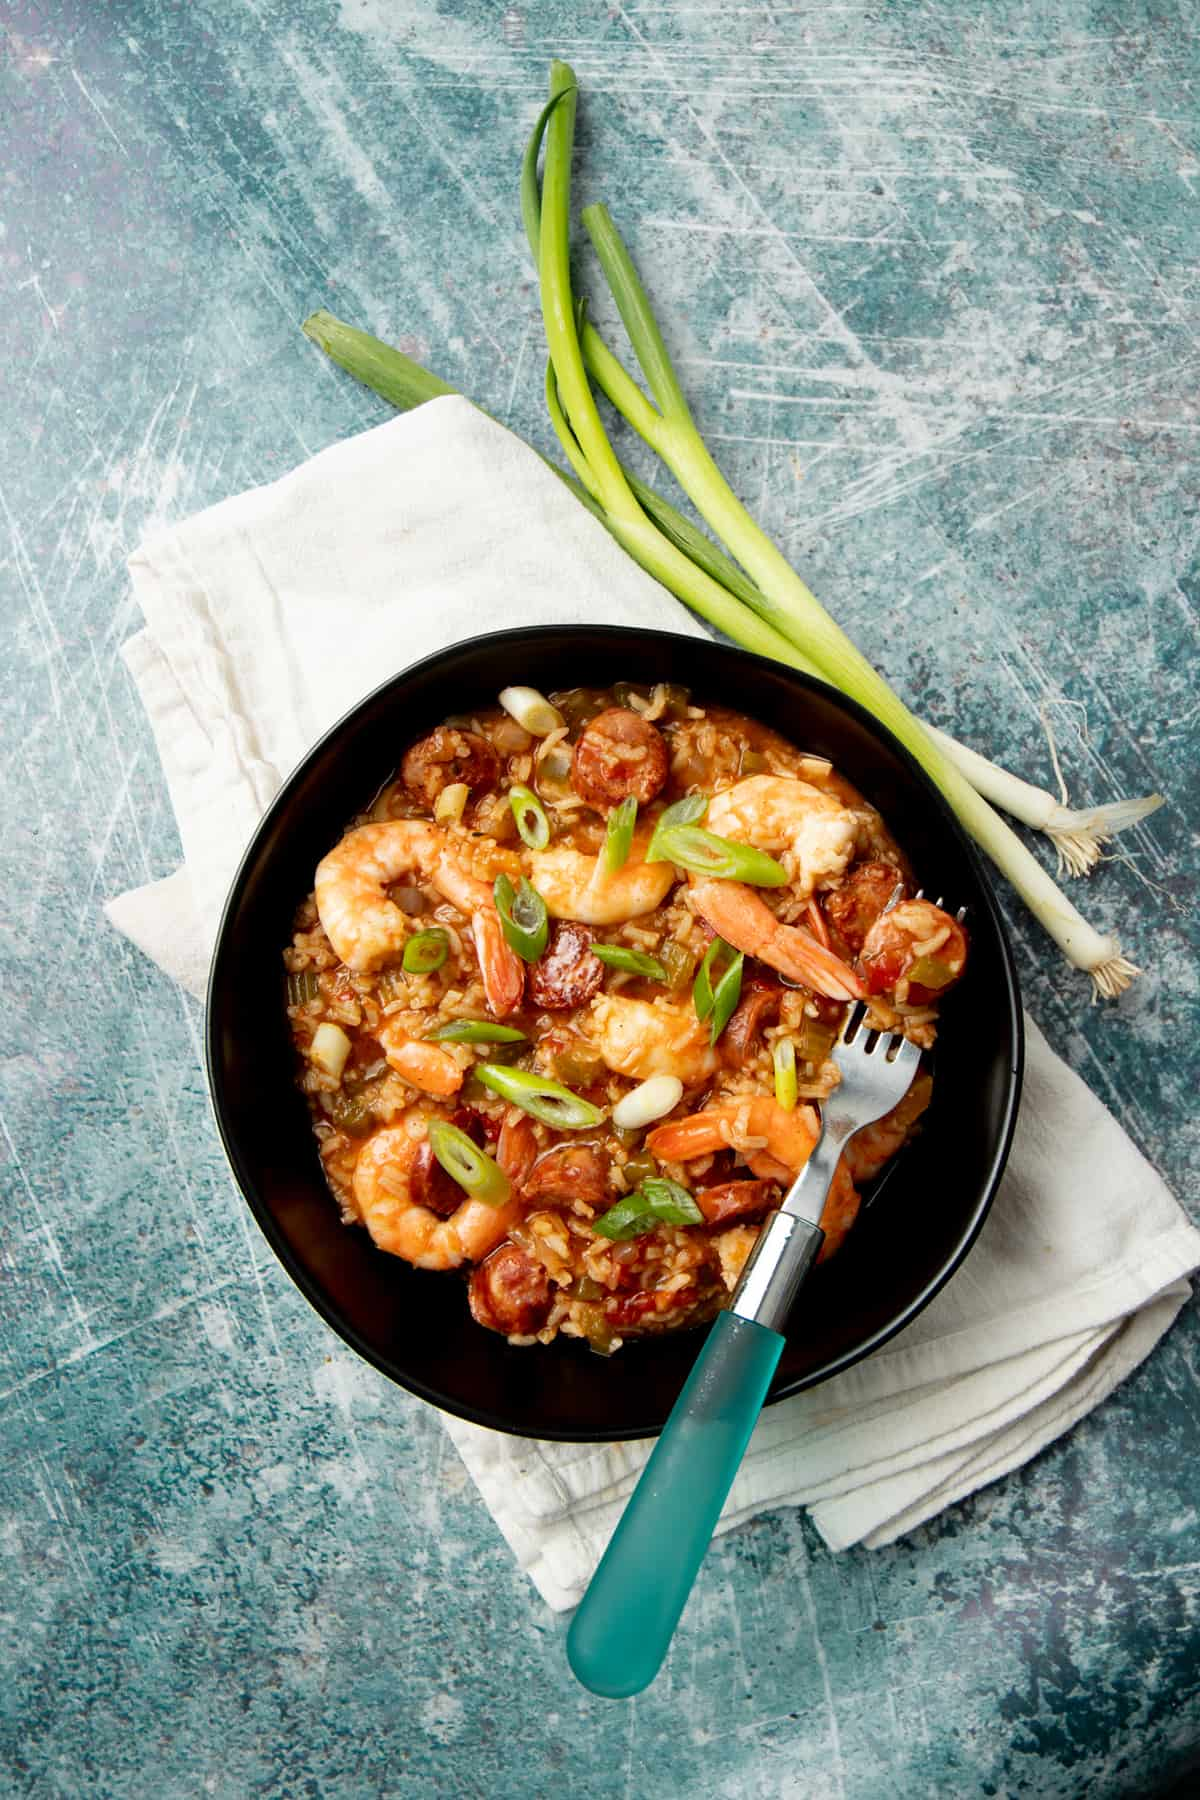 A piece of sausage rests on a fork inside a bowl of jambalaya. Whole green onions lay alongside the bowl.